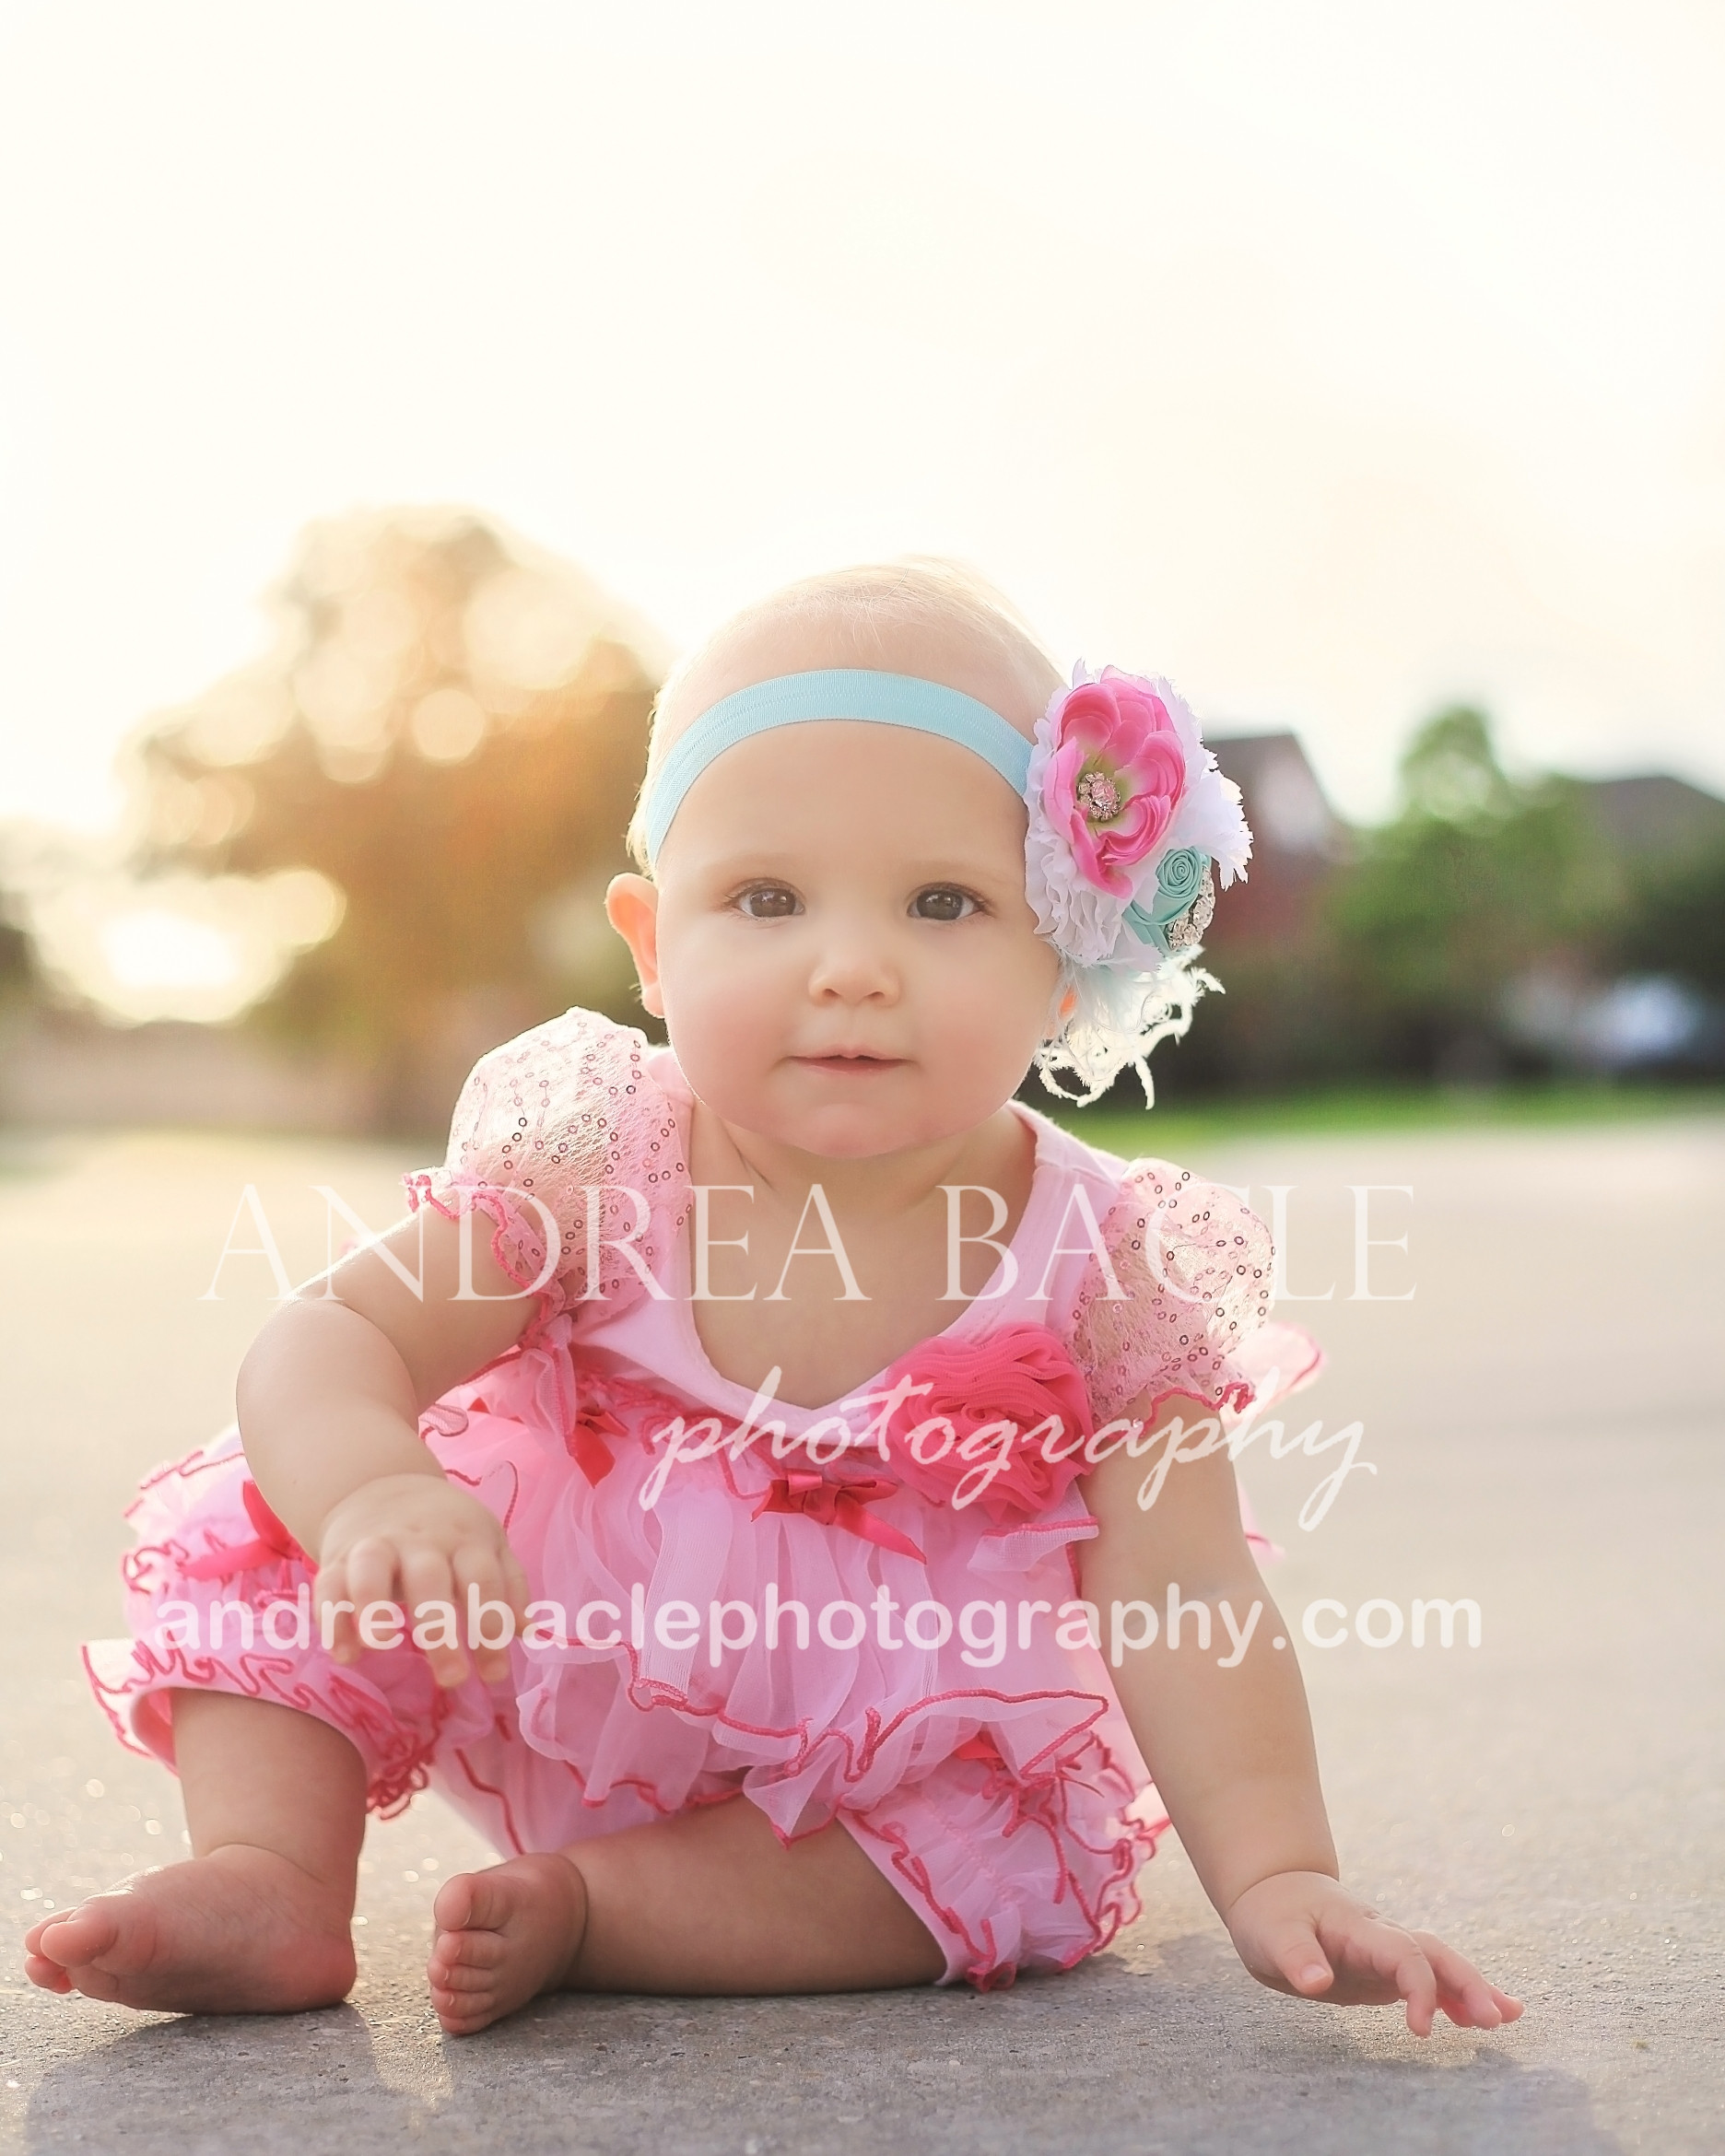 Birthday Gift Ideas For One Year Old Baby Girl  e Year Old Baby Girl Birthday Dress Fashion Show